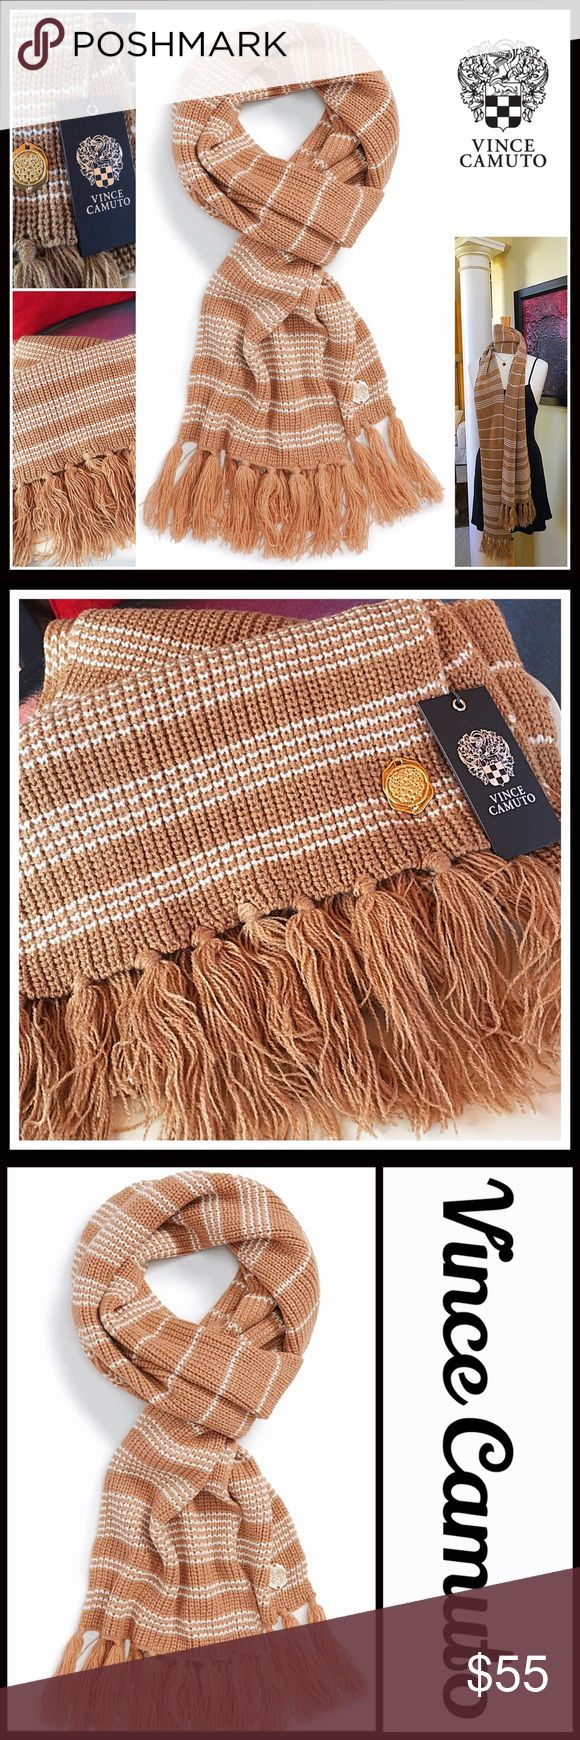 """VINCE CAMUTO COLLECTION Long Tassel Scarf NEW WITH TAGS RETAIL PRICE: $68  Scarf Stripe Thermal Blanket Scarf Fringe Trim  * Allover striped print   * Tassel fringe trim  * Approx 12"""" W X 74"""" L; 6"""" fringe  * Oversized style  * Super soft fabric  * Versatile longer length for styling    Material: 100% acrylic  Color: Camel-Ivory Item# SEARCH # Cape wrap CHUNKY KNIT SCARF Long Cowl Neck infinity plaid stripes checkered fray No Trades - Offers Considered* *Please use the blue 'offer' button to…"""